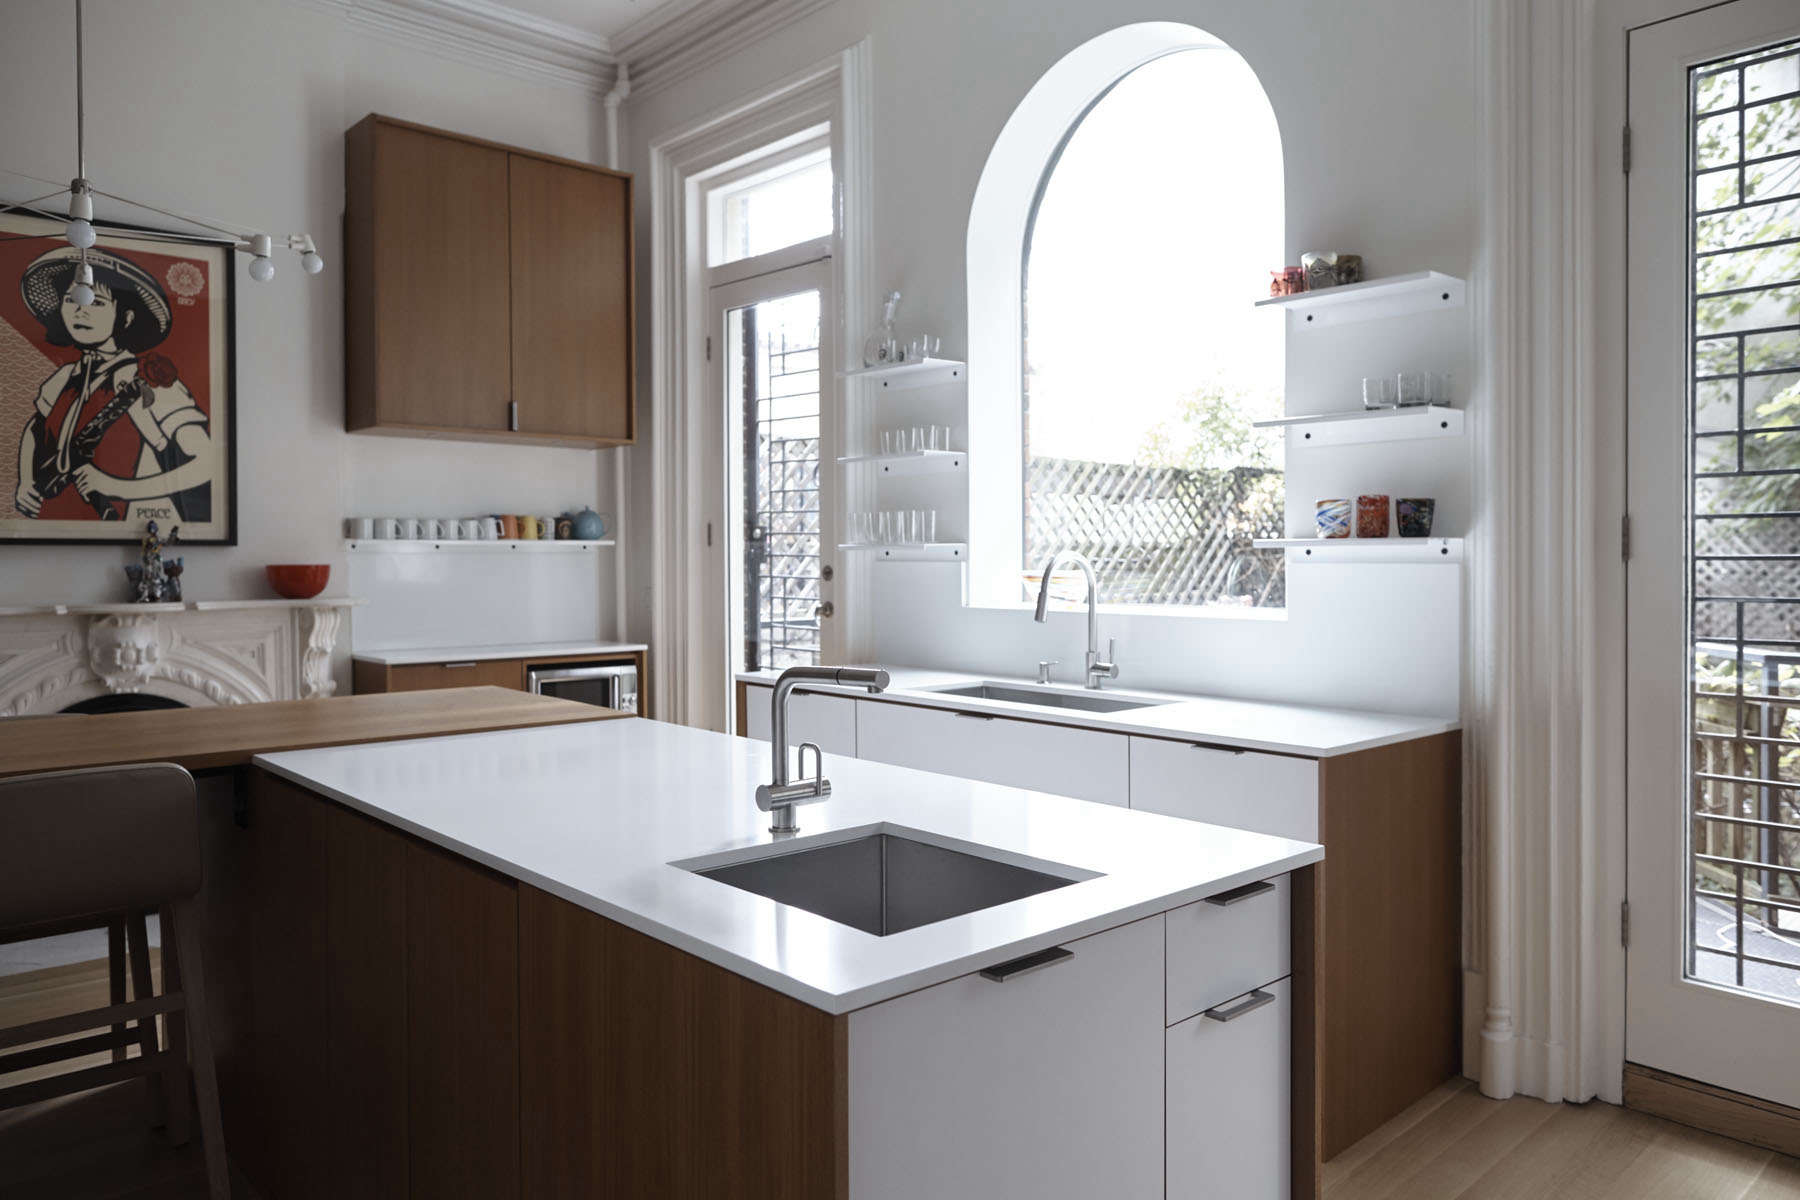 Kitchen of the Week: A Something Old, Something New Kitchen in ...